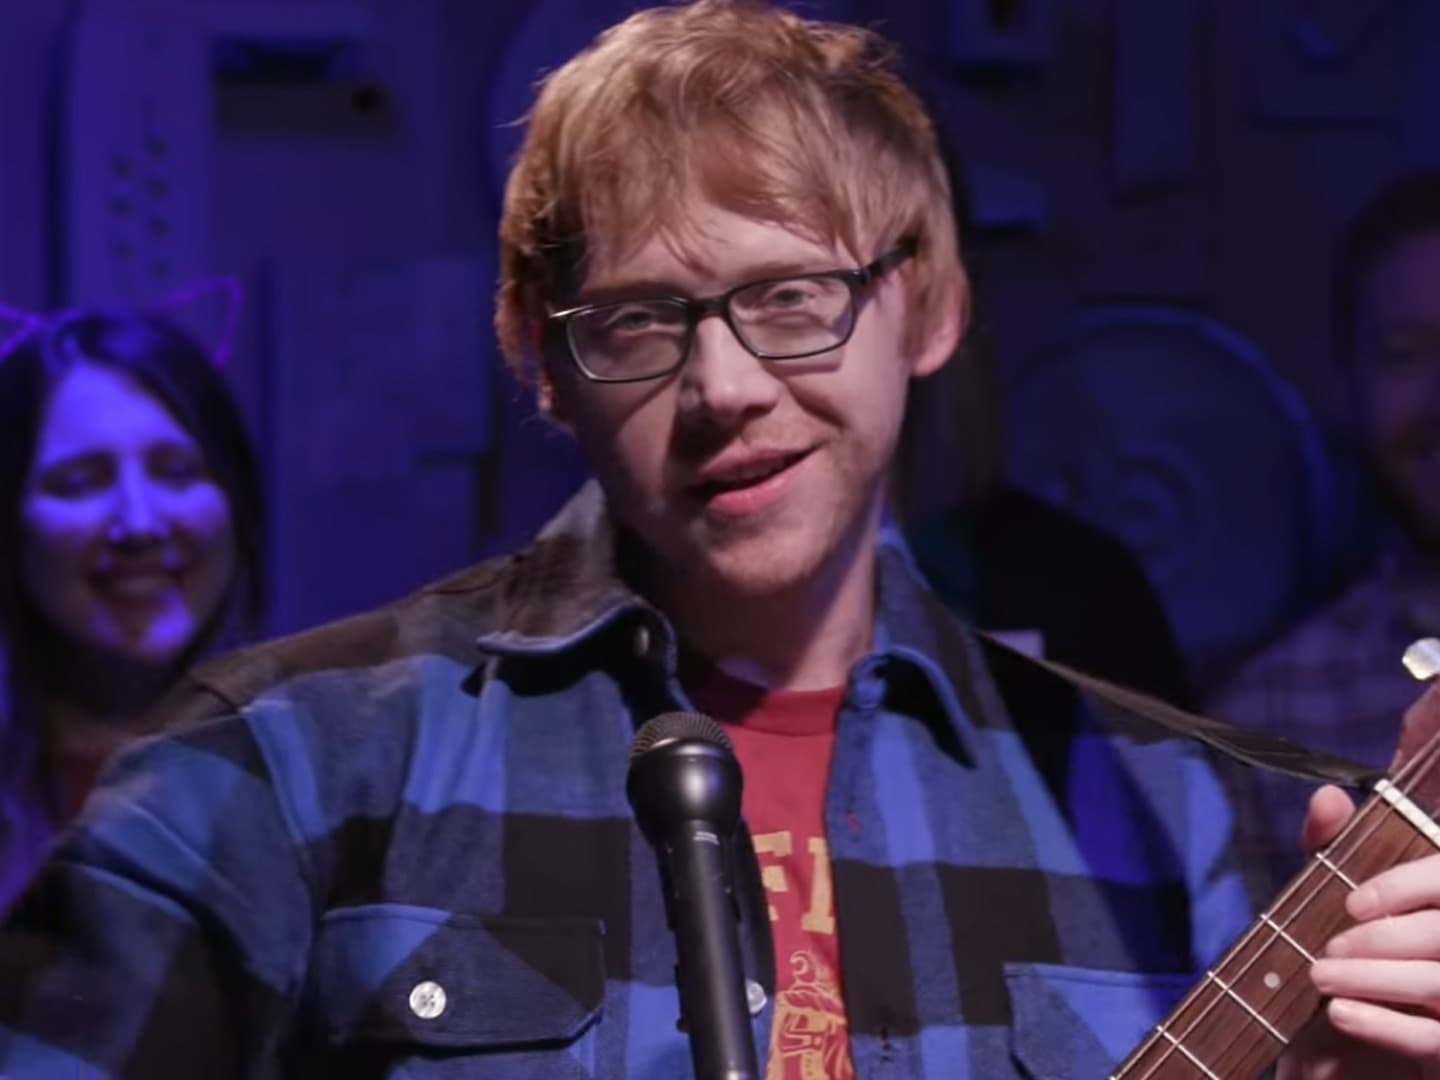 Rupert Grint impersonating Ed Sheeran